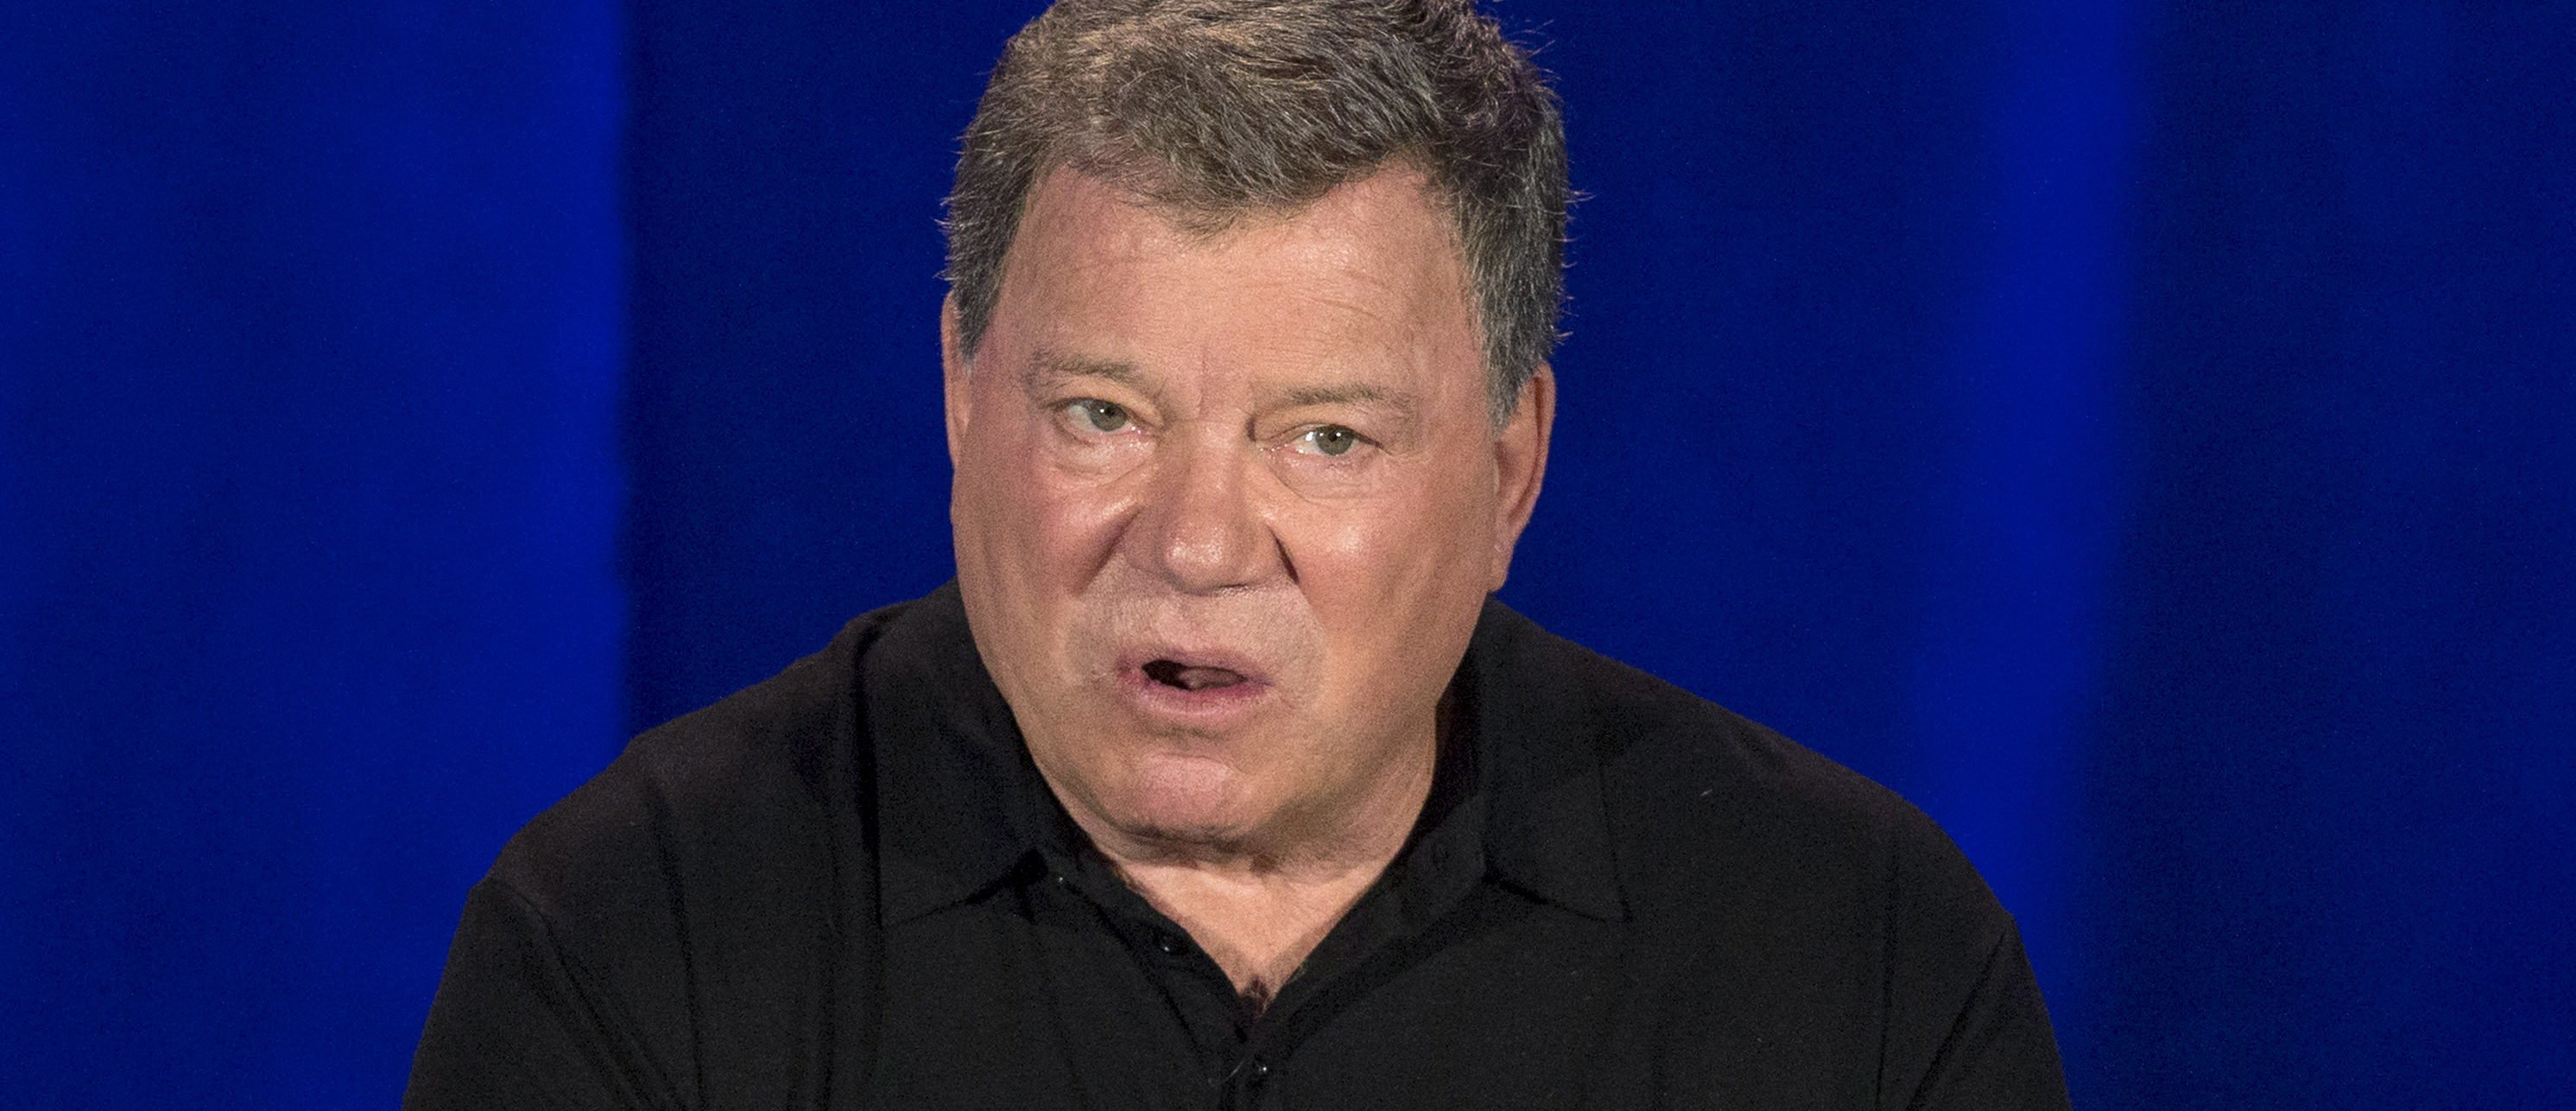 William Shatner Calls Out Facebook For Fake Story About His Death